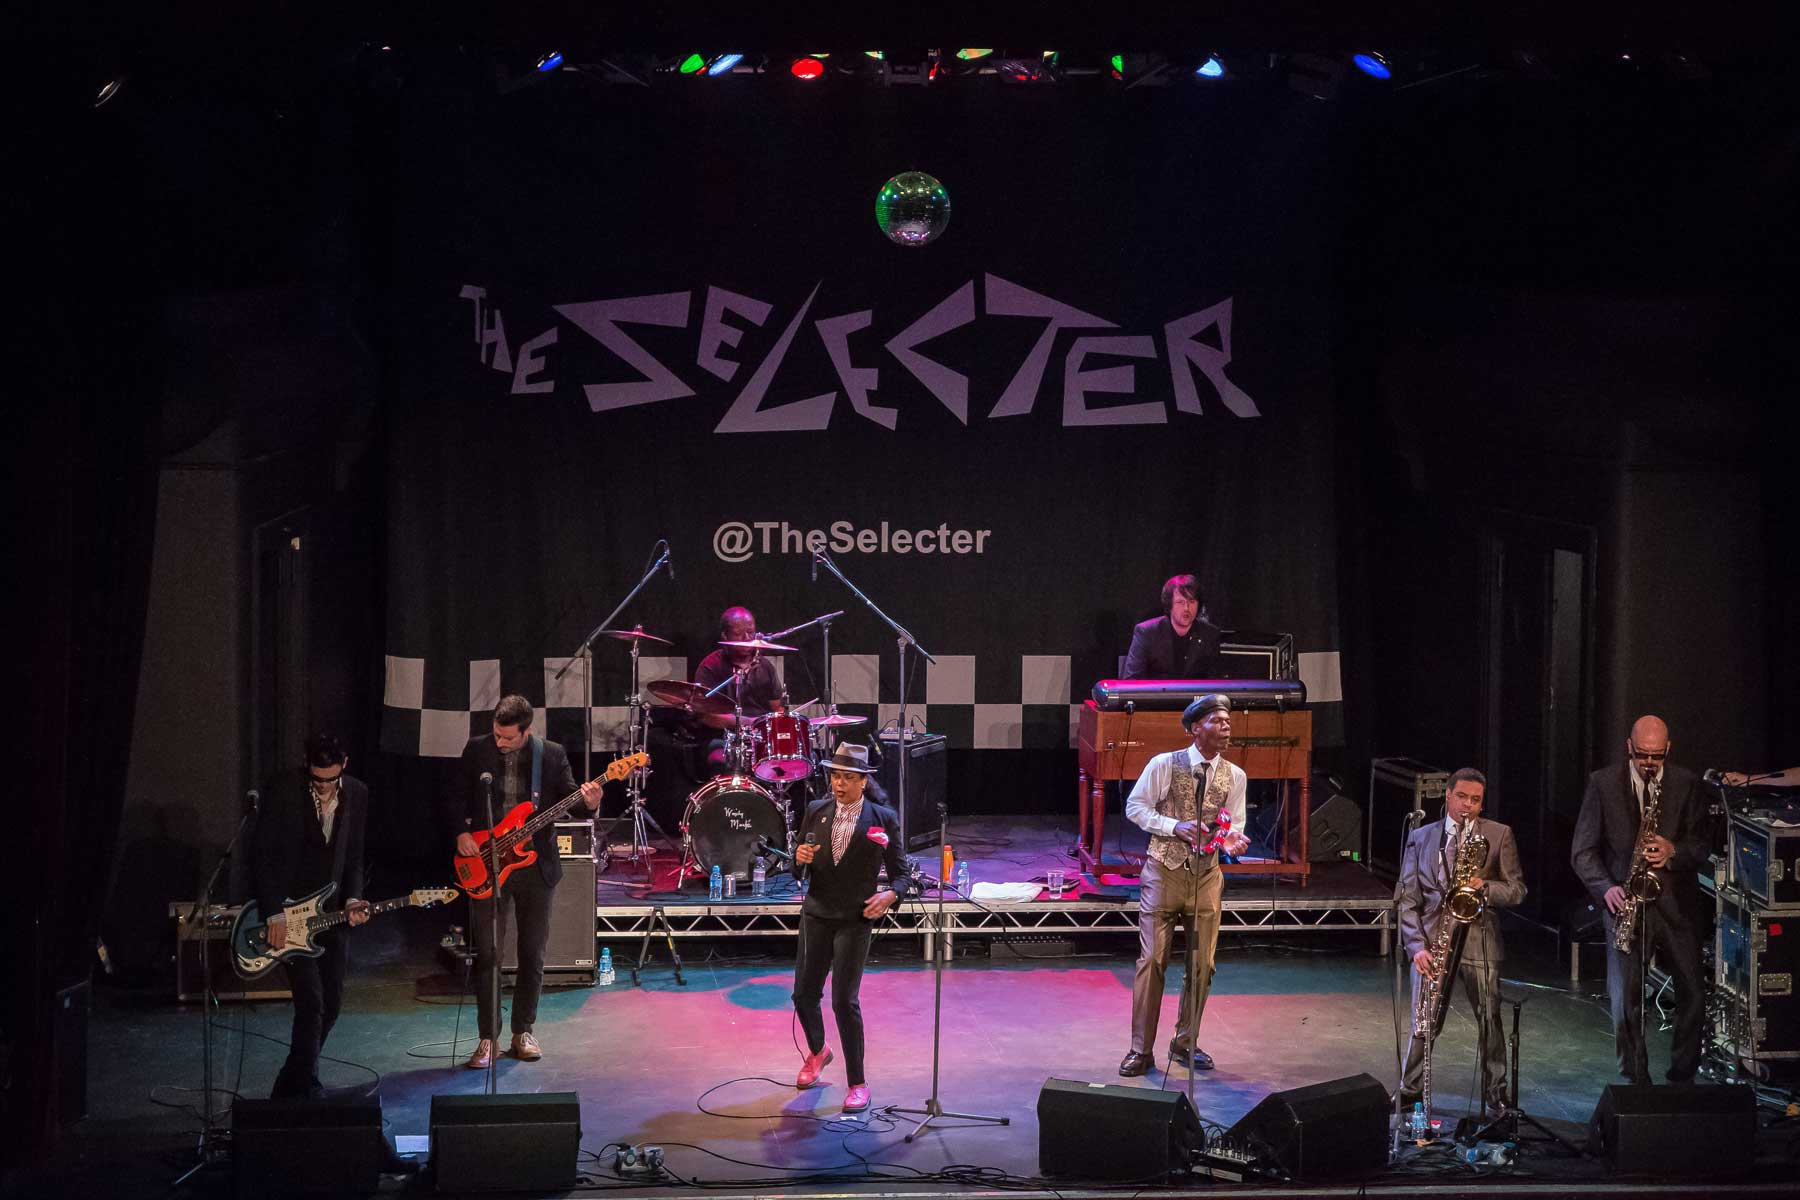 Paisley gives warm welcome to Coventry's The Selecter